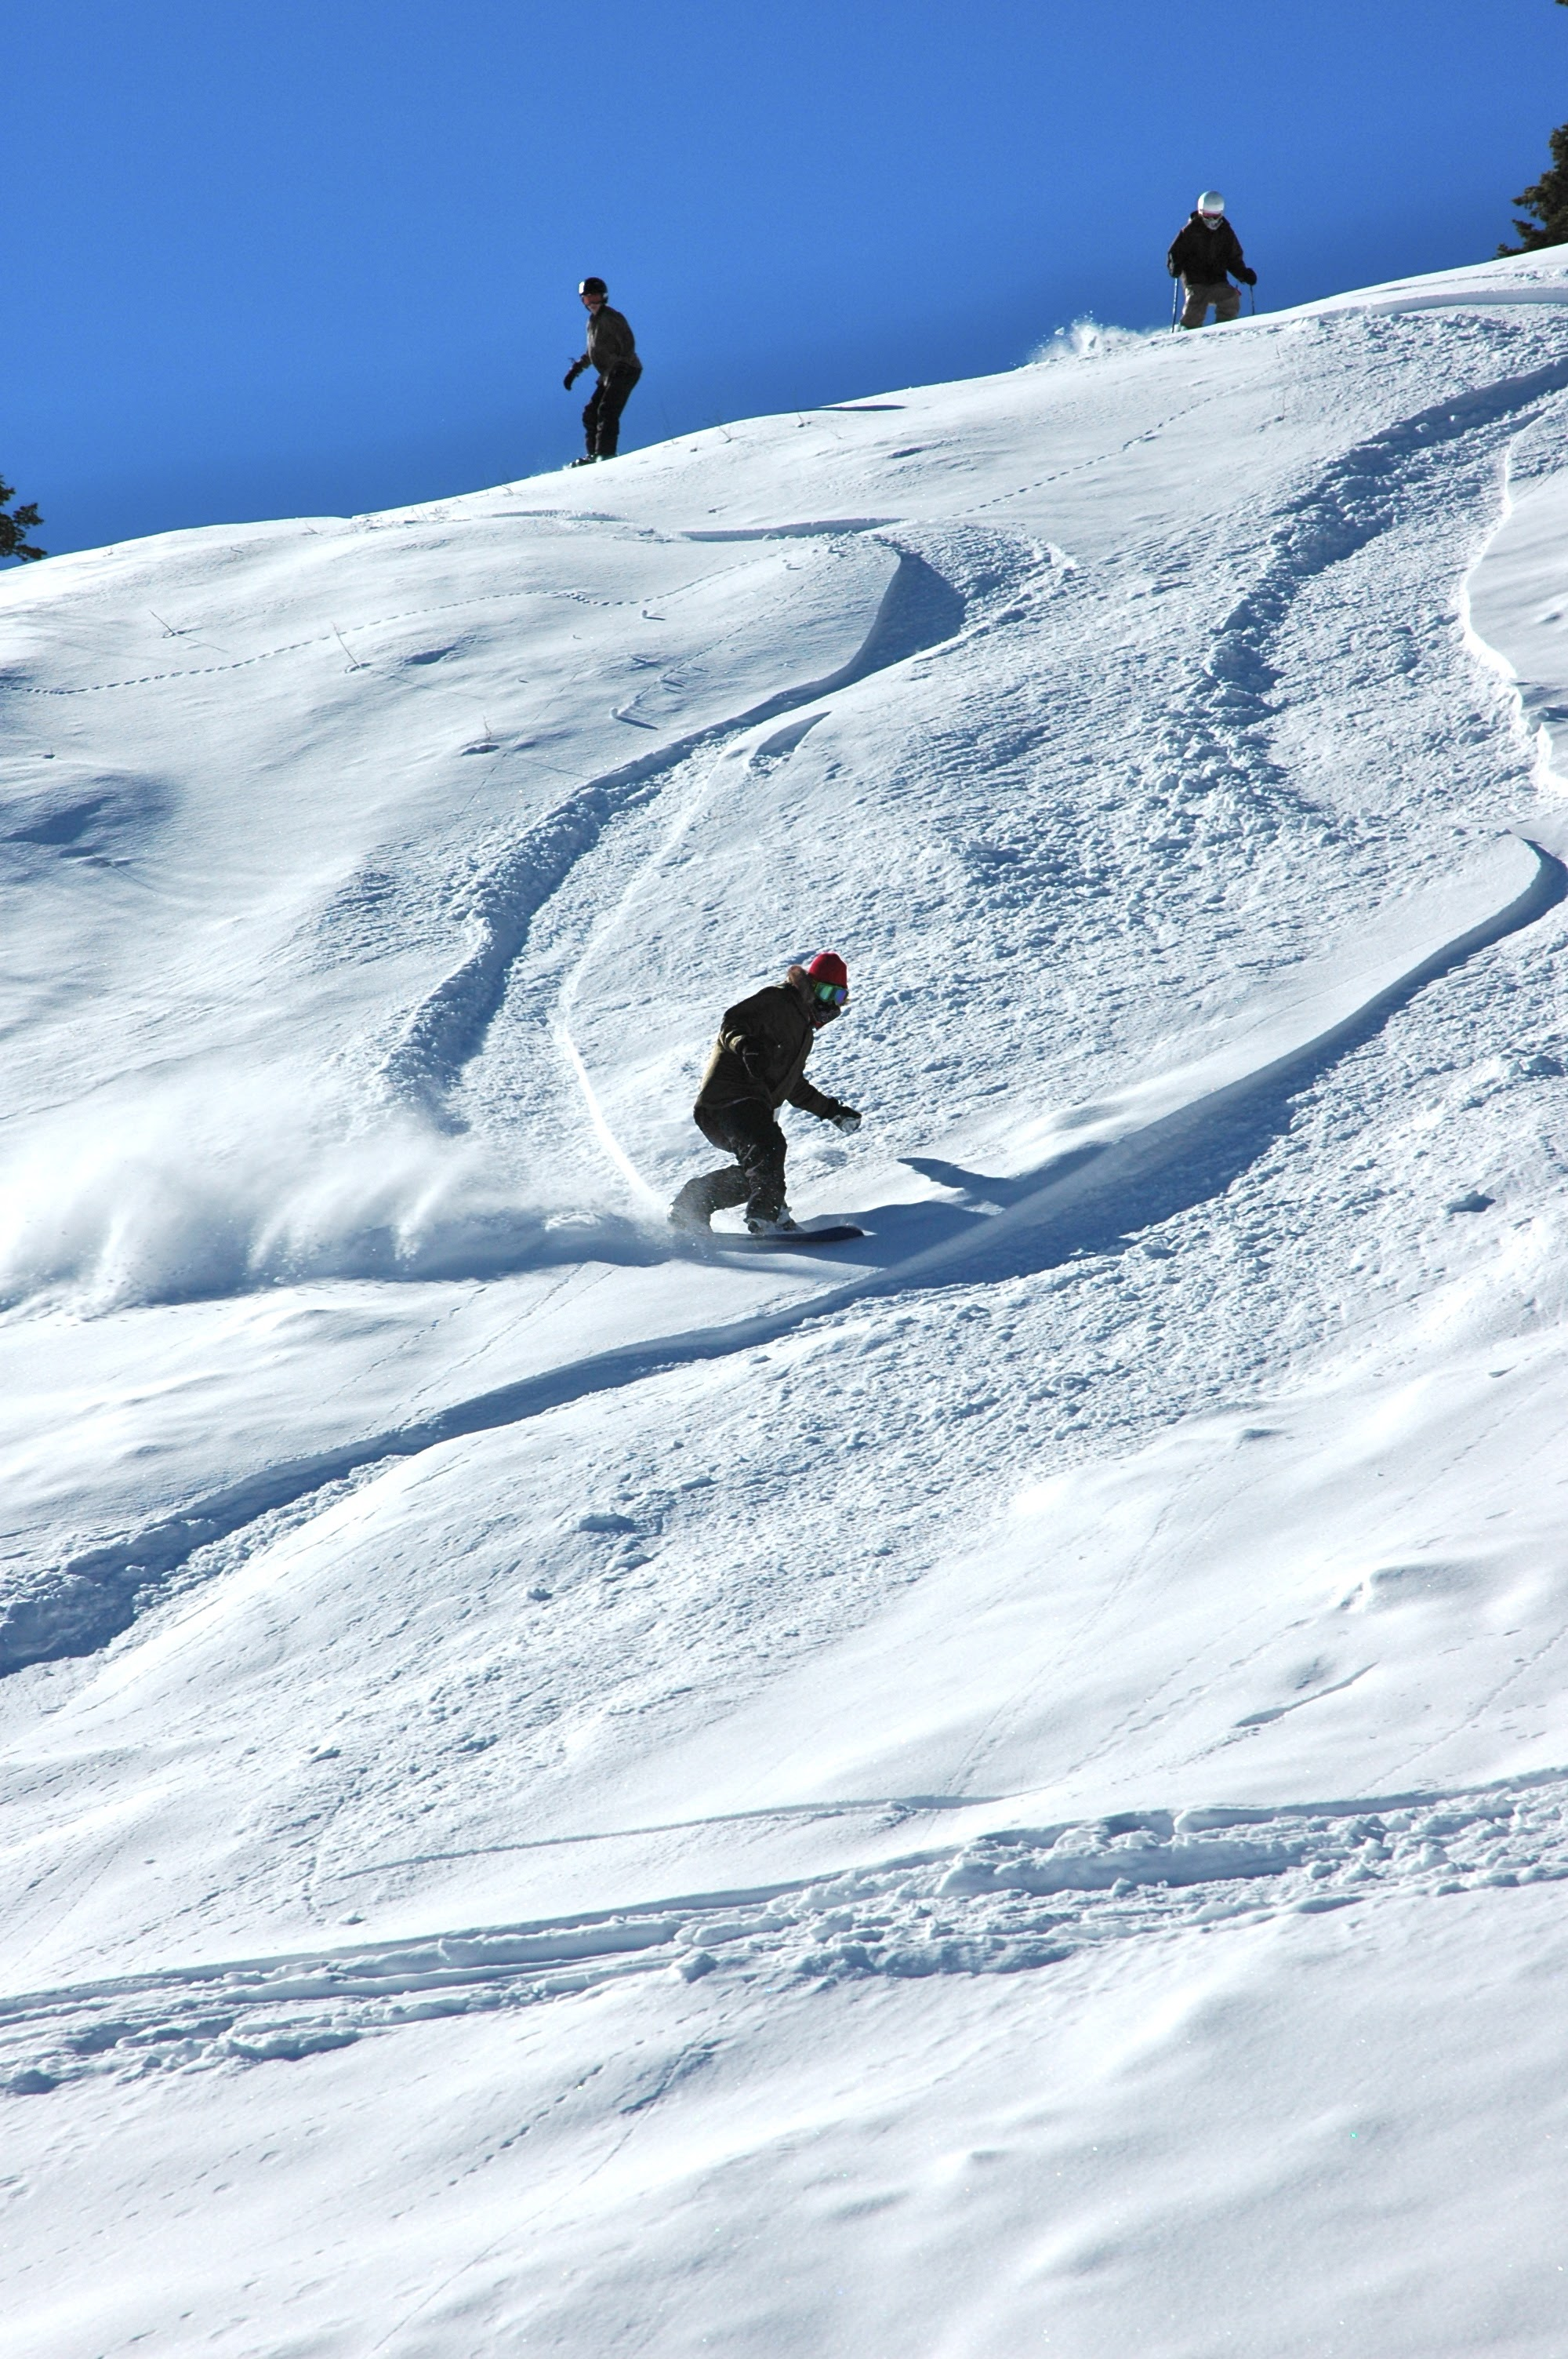 skiing in new mexico | new mexico ski resorts | visit albuquerque